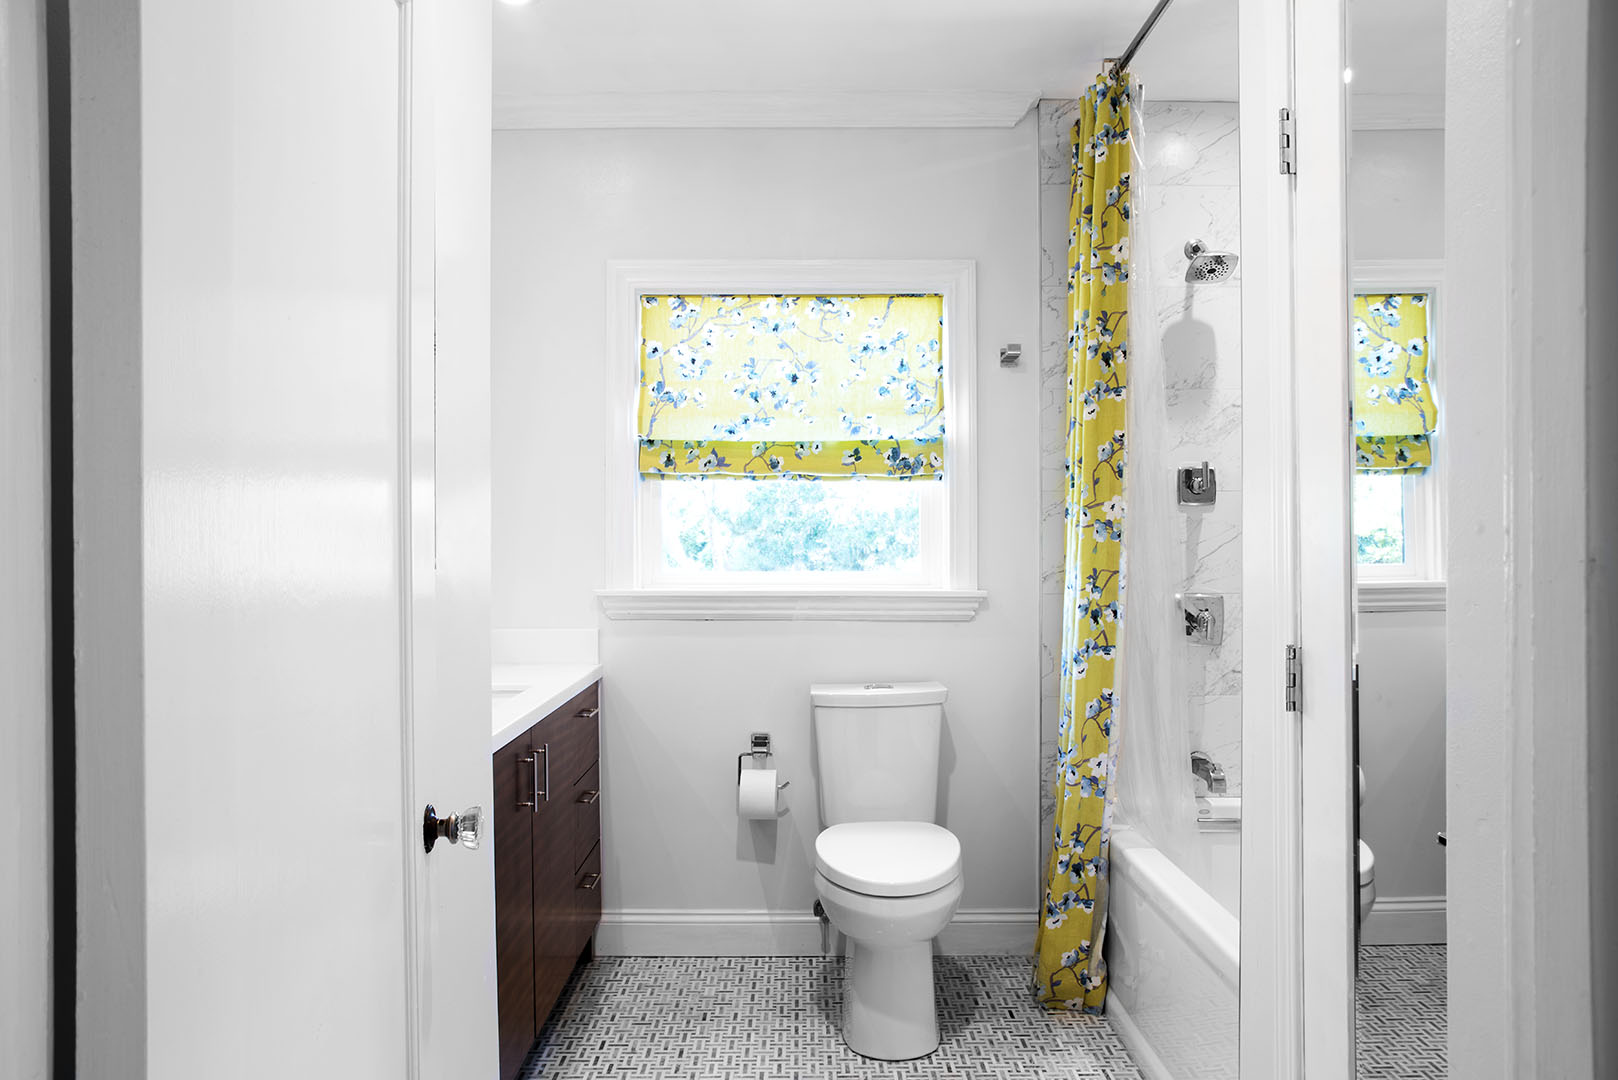 Oakland bathroom interior design